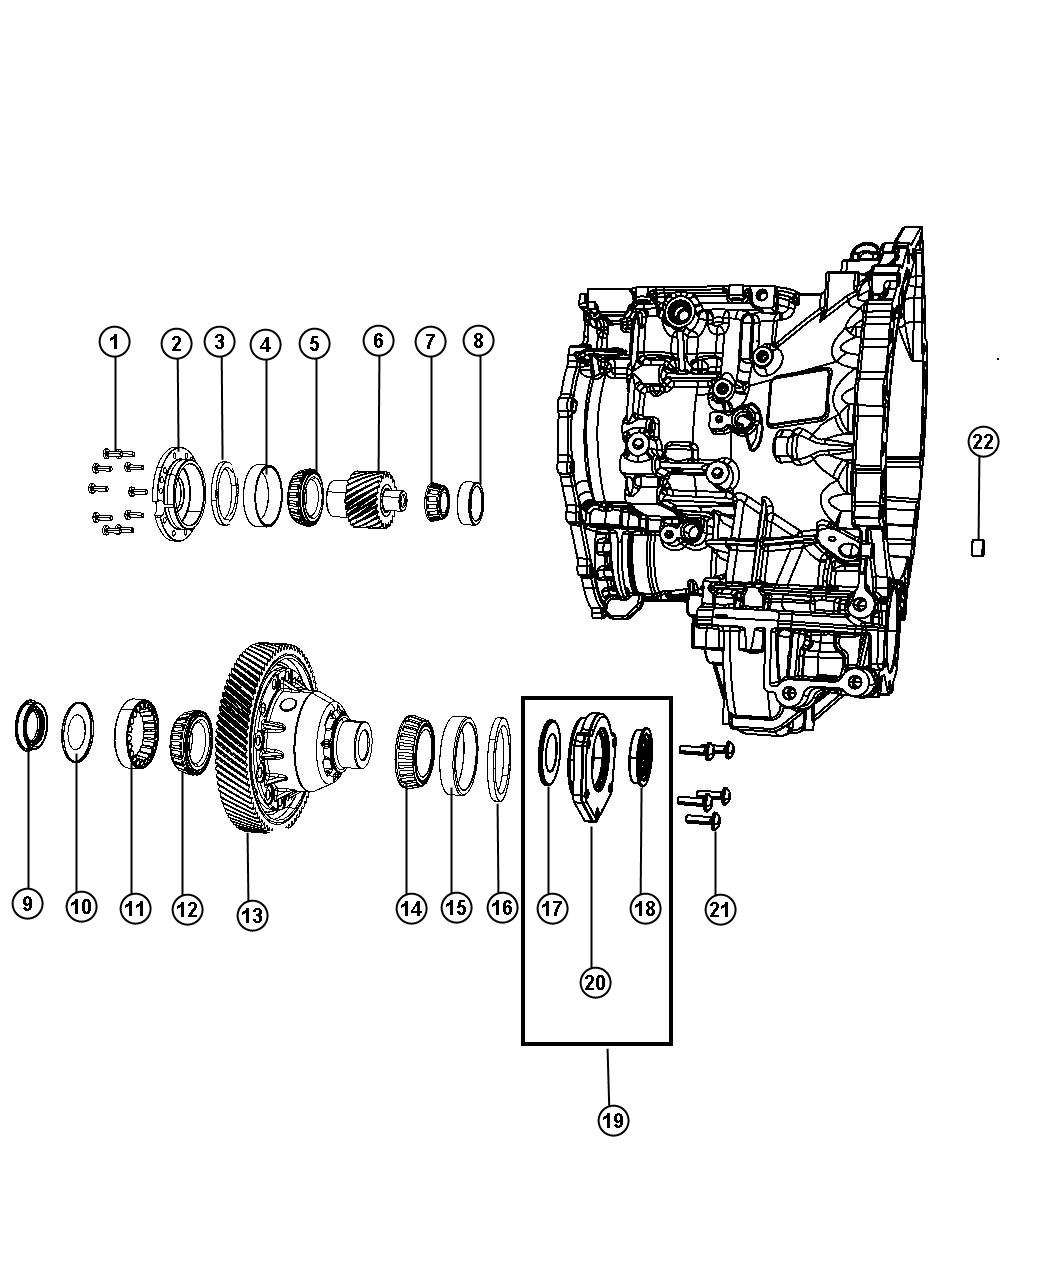 Diagram Output Pinion and Dfferential,[6-Speed Automatic 62TE Transmission]. for your 2018 Chrysler Pacifica Touring Plus